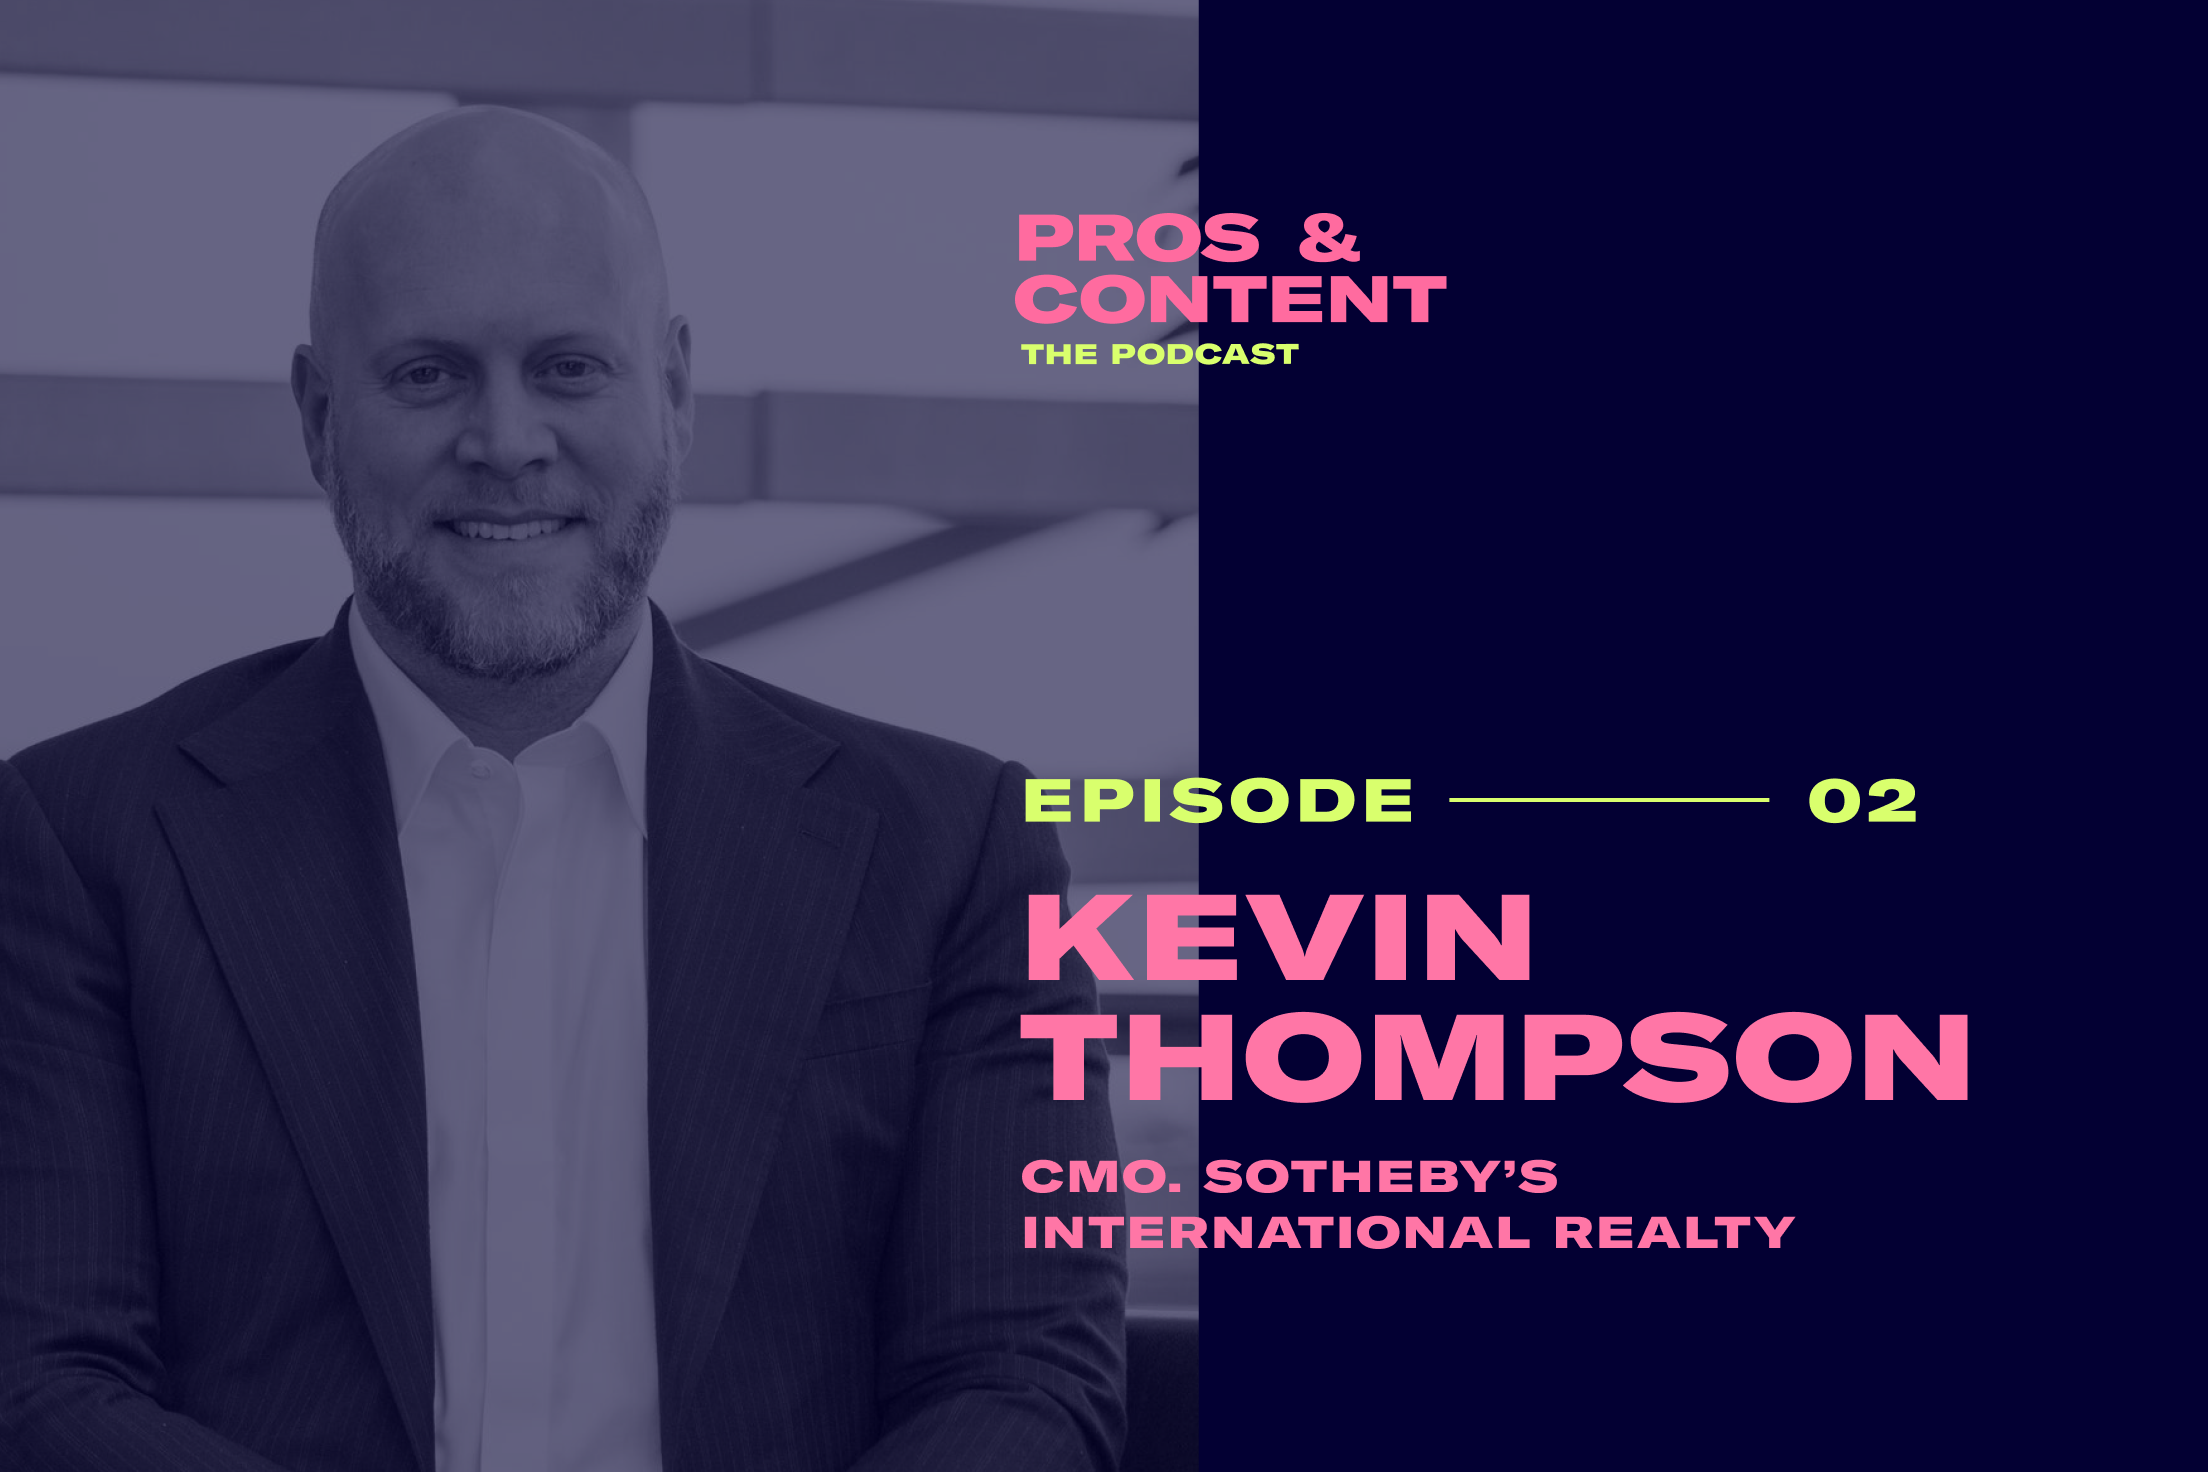 Pros & Content Podcast: Kevin Thompson on Real Estate Content Marketing